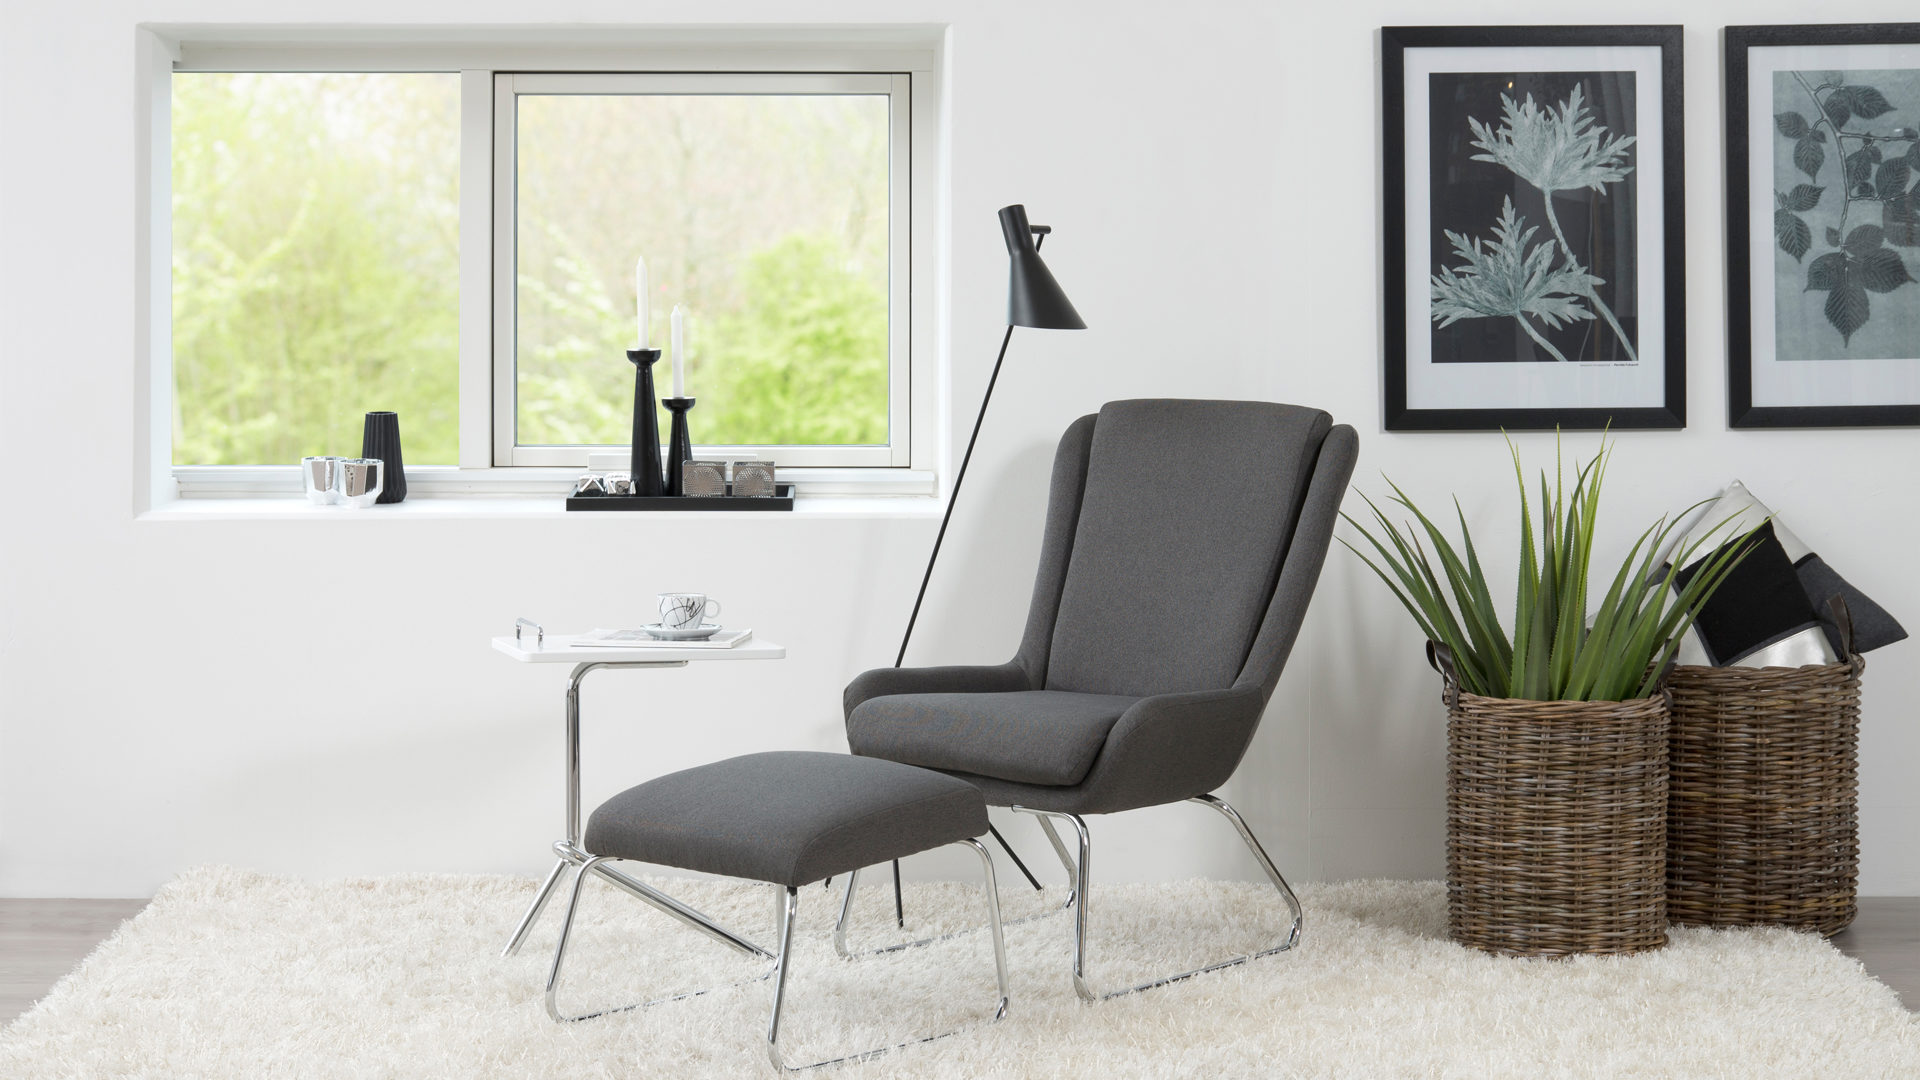 Best Lounge Sessel Mit Hocker Als Loungembel Mit Komfort With Lounge Sessel  Guenstig